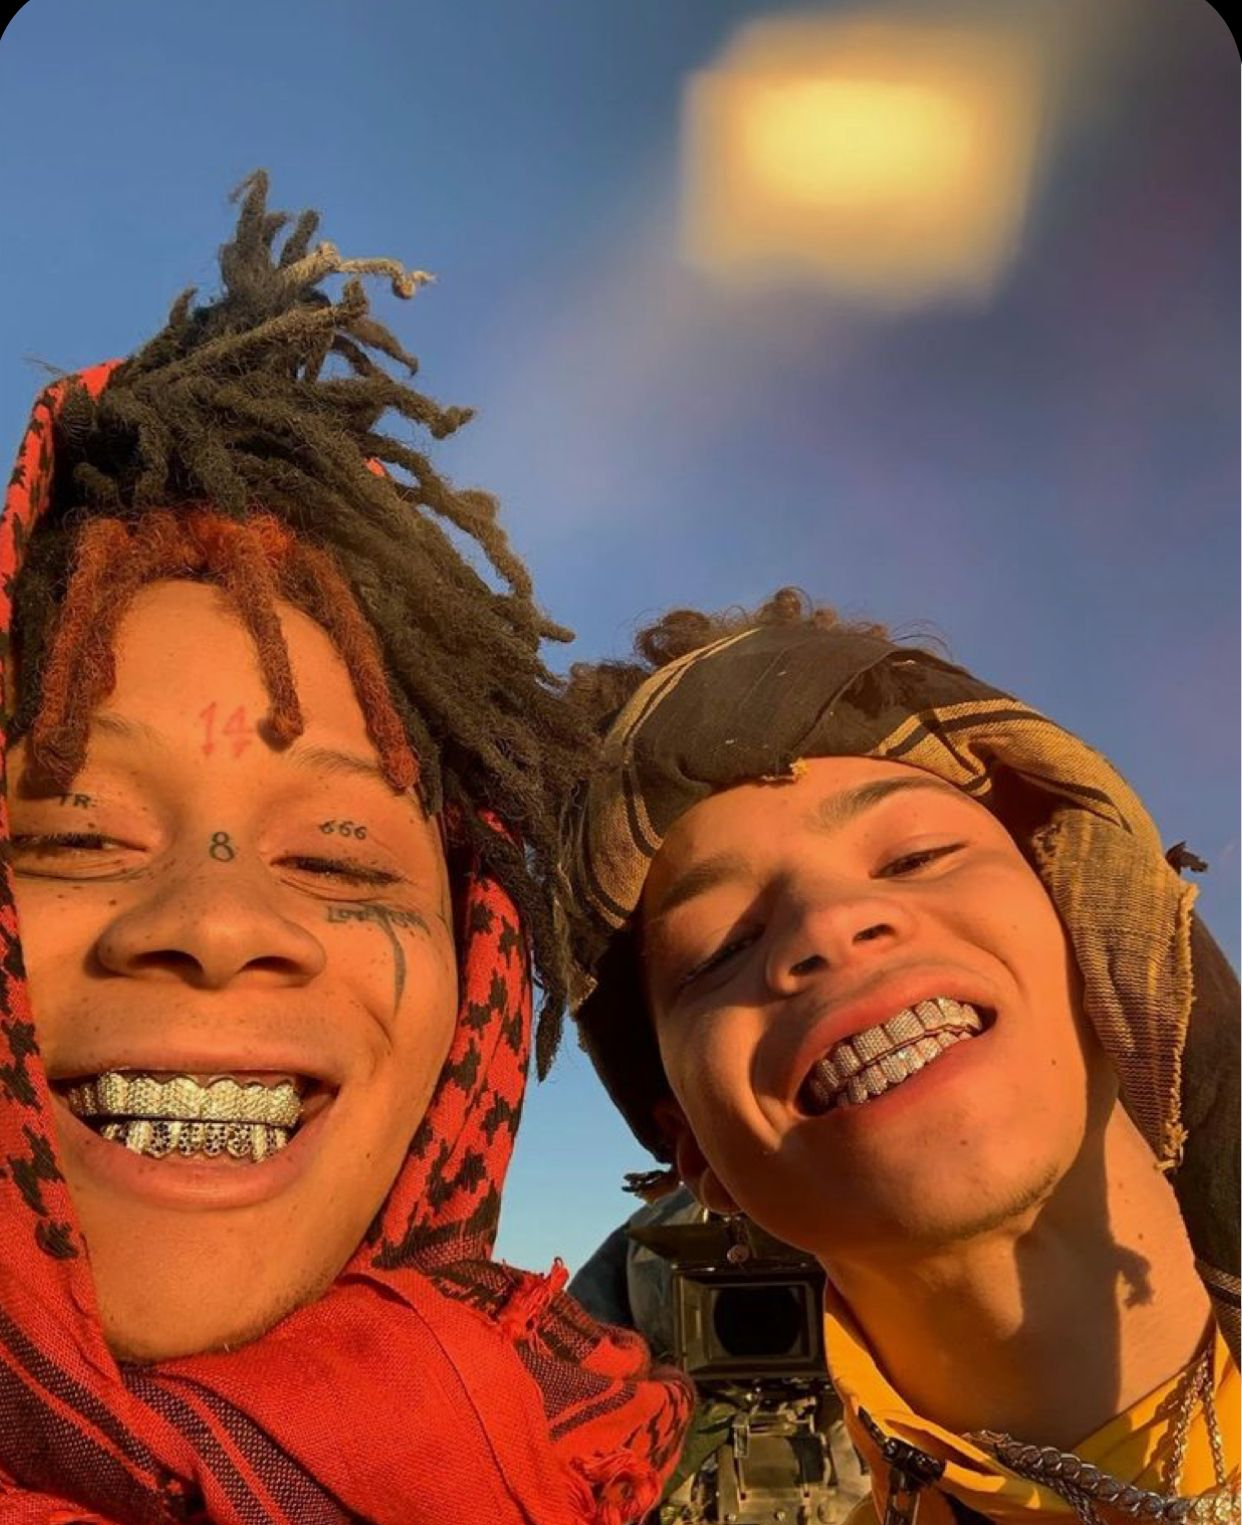 trippieredd in 2020 Rapper art